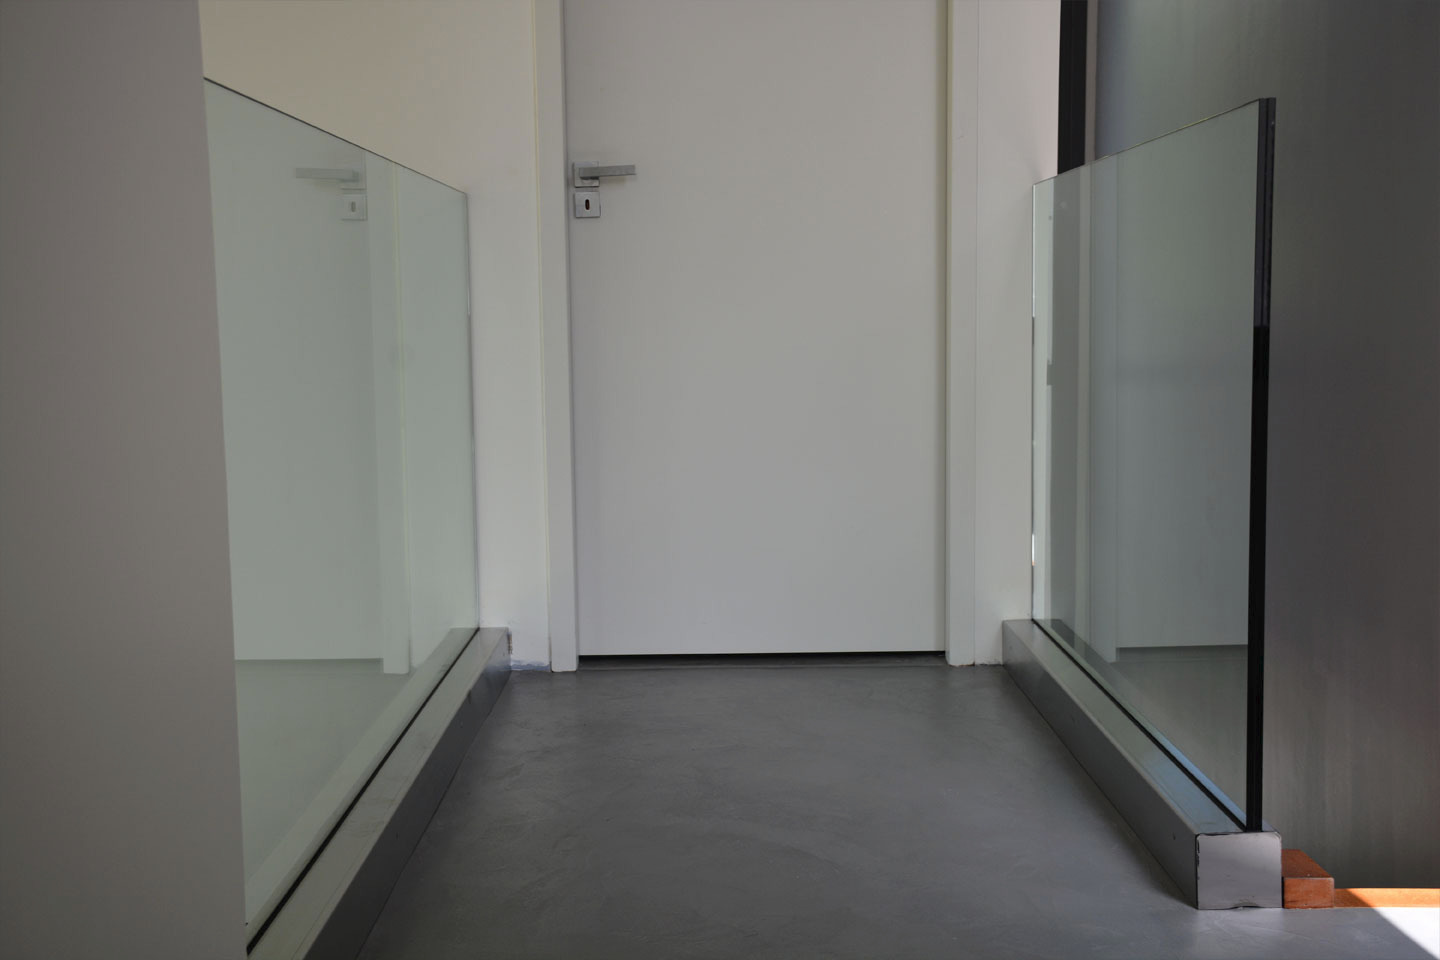 Rambarde interieur maison great garde corps cbles inox for Rambarde interieur